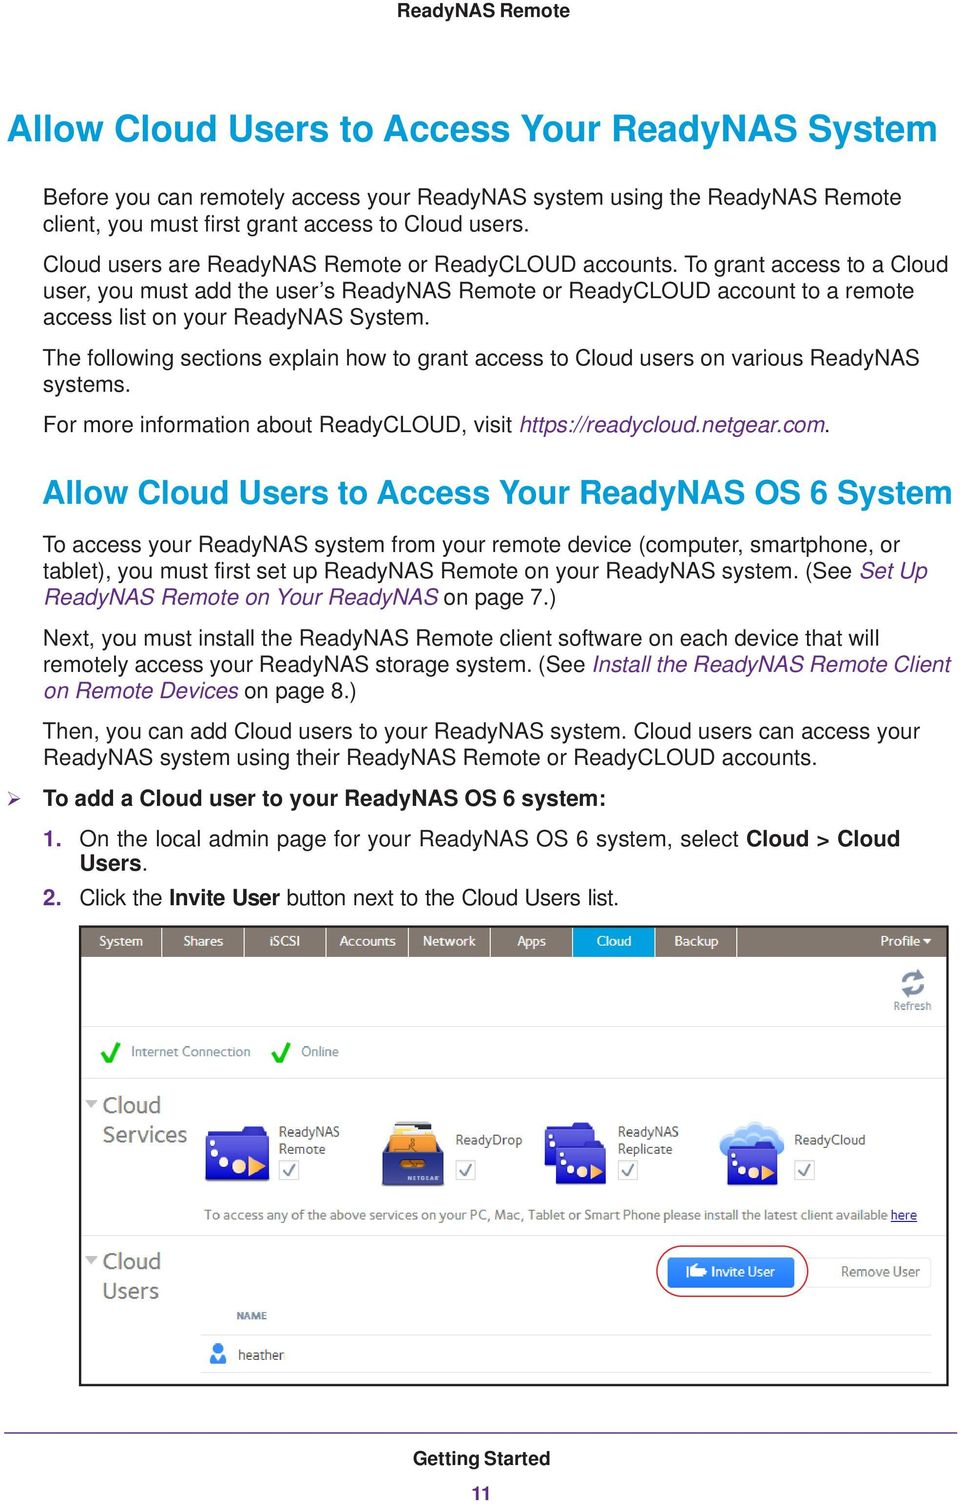 The following sections explain how to grant access to Cloud users on various ReadyNAS systems. For more information about ReadyCLOUD, visit https://readycloud.netgear.com.